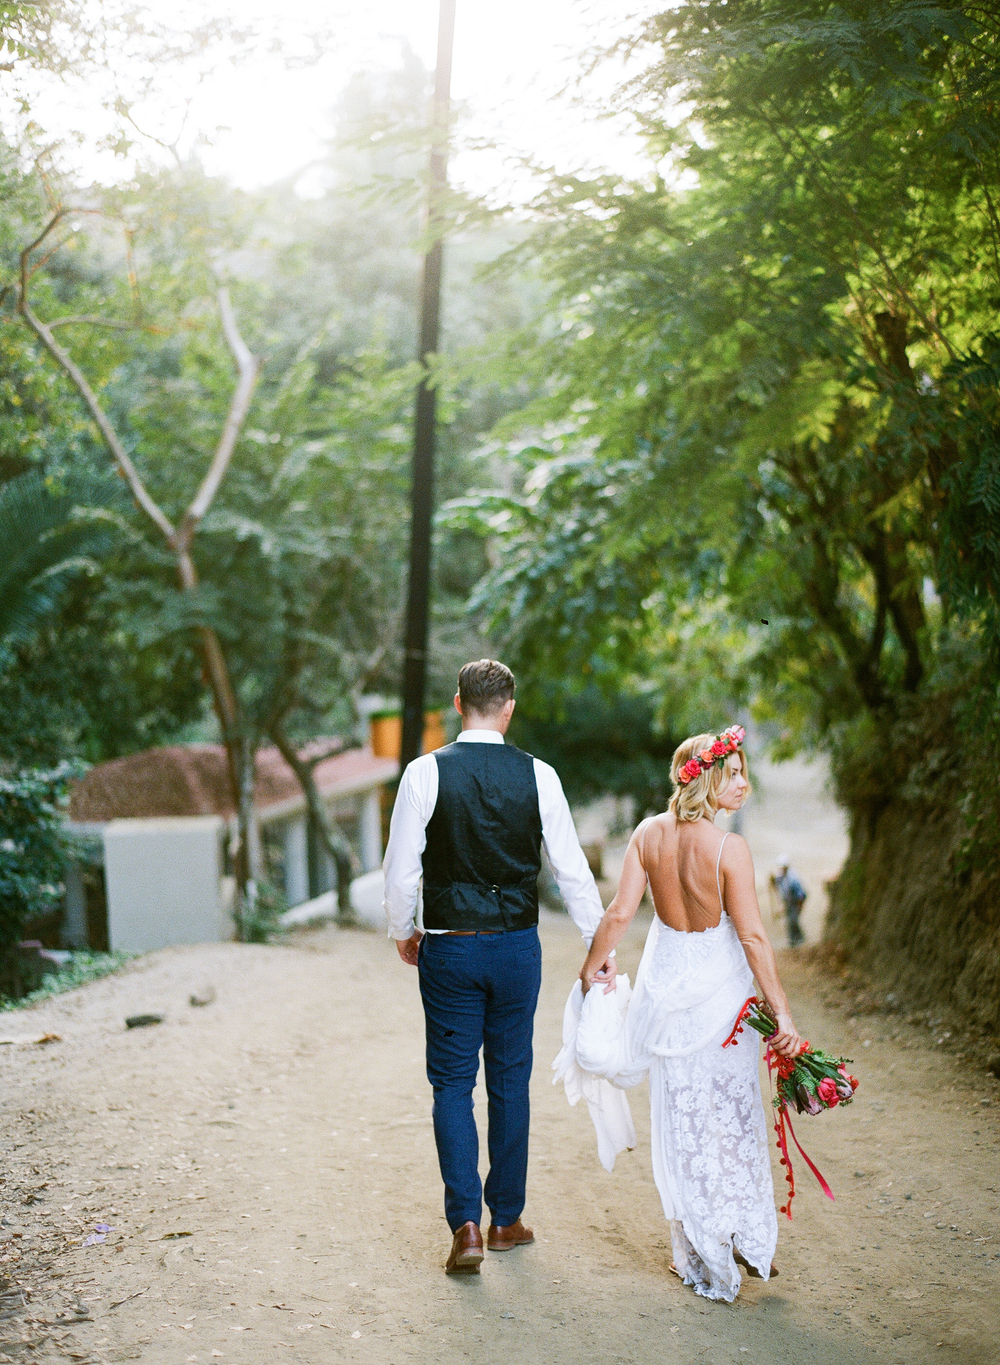 michellebeller.com | Michelle Beller Photography | Destination Wedding in Sayulita Mexico | Destination Wedding Photographer